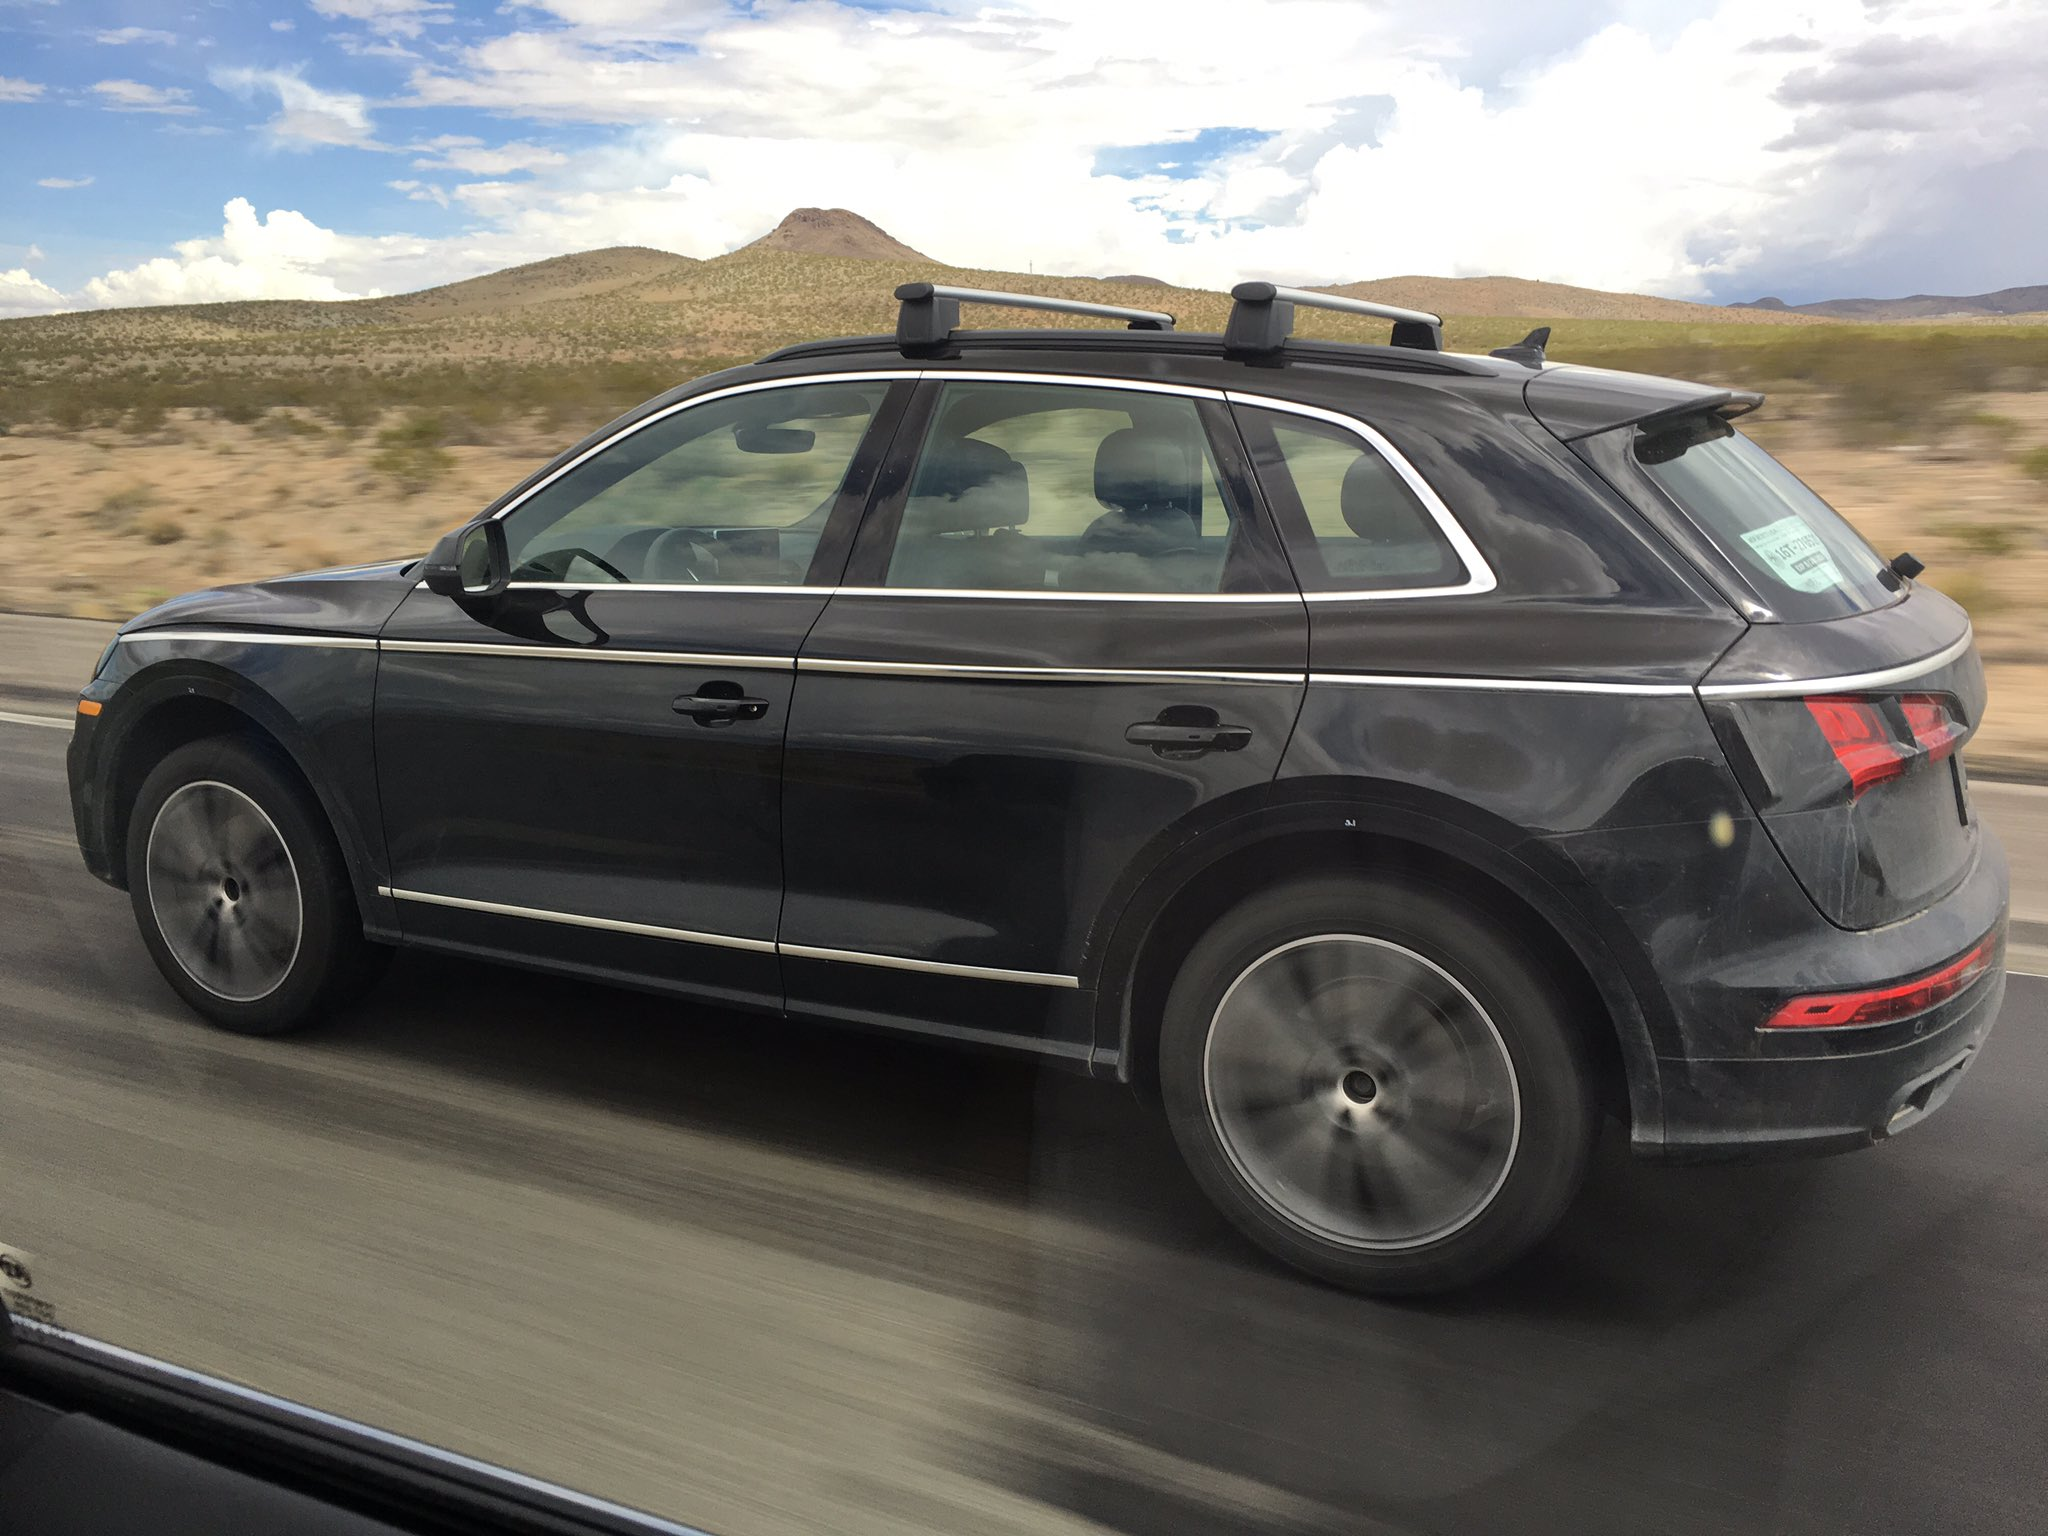 Top 10 most affordable luxury cars autospies auto news - The Q5 S Backside Remains Largely Similar But Is More Refined Personally I Like The Dual Exhaust That S Integrated Into The Rear Clip